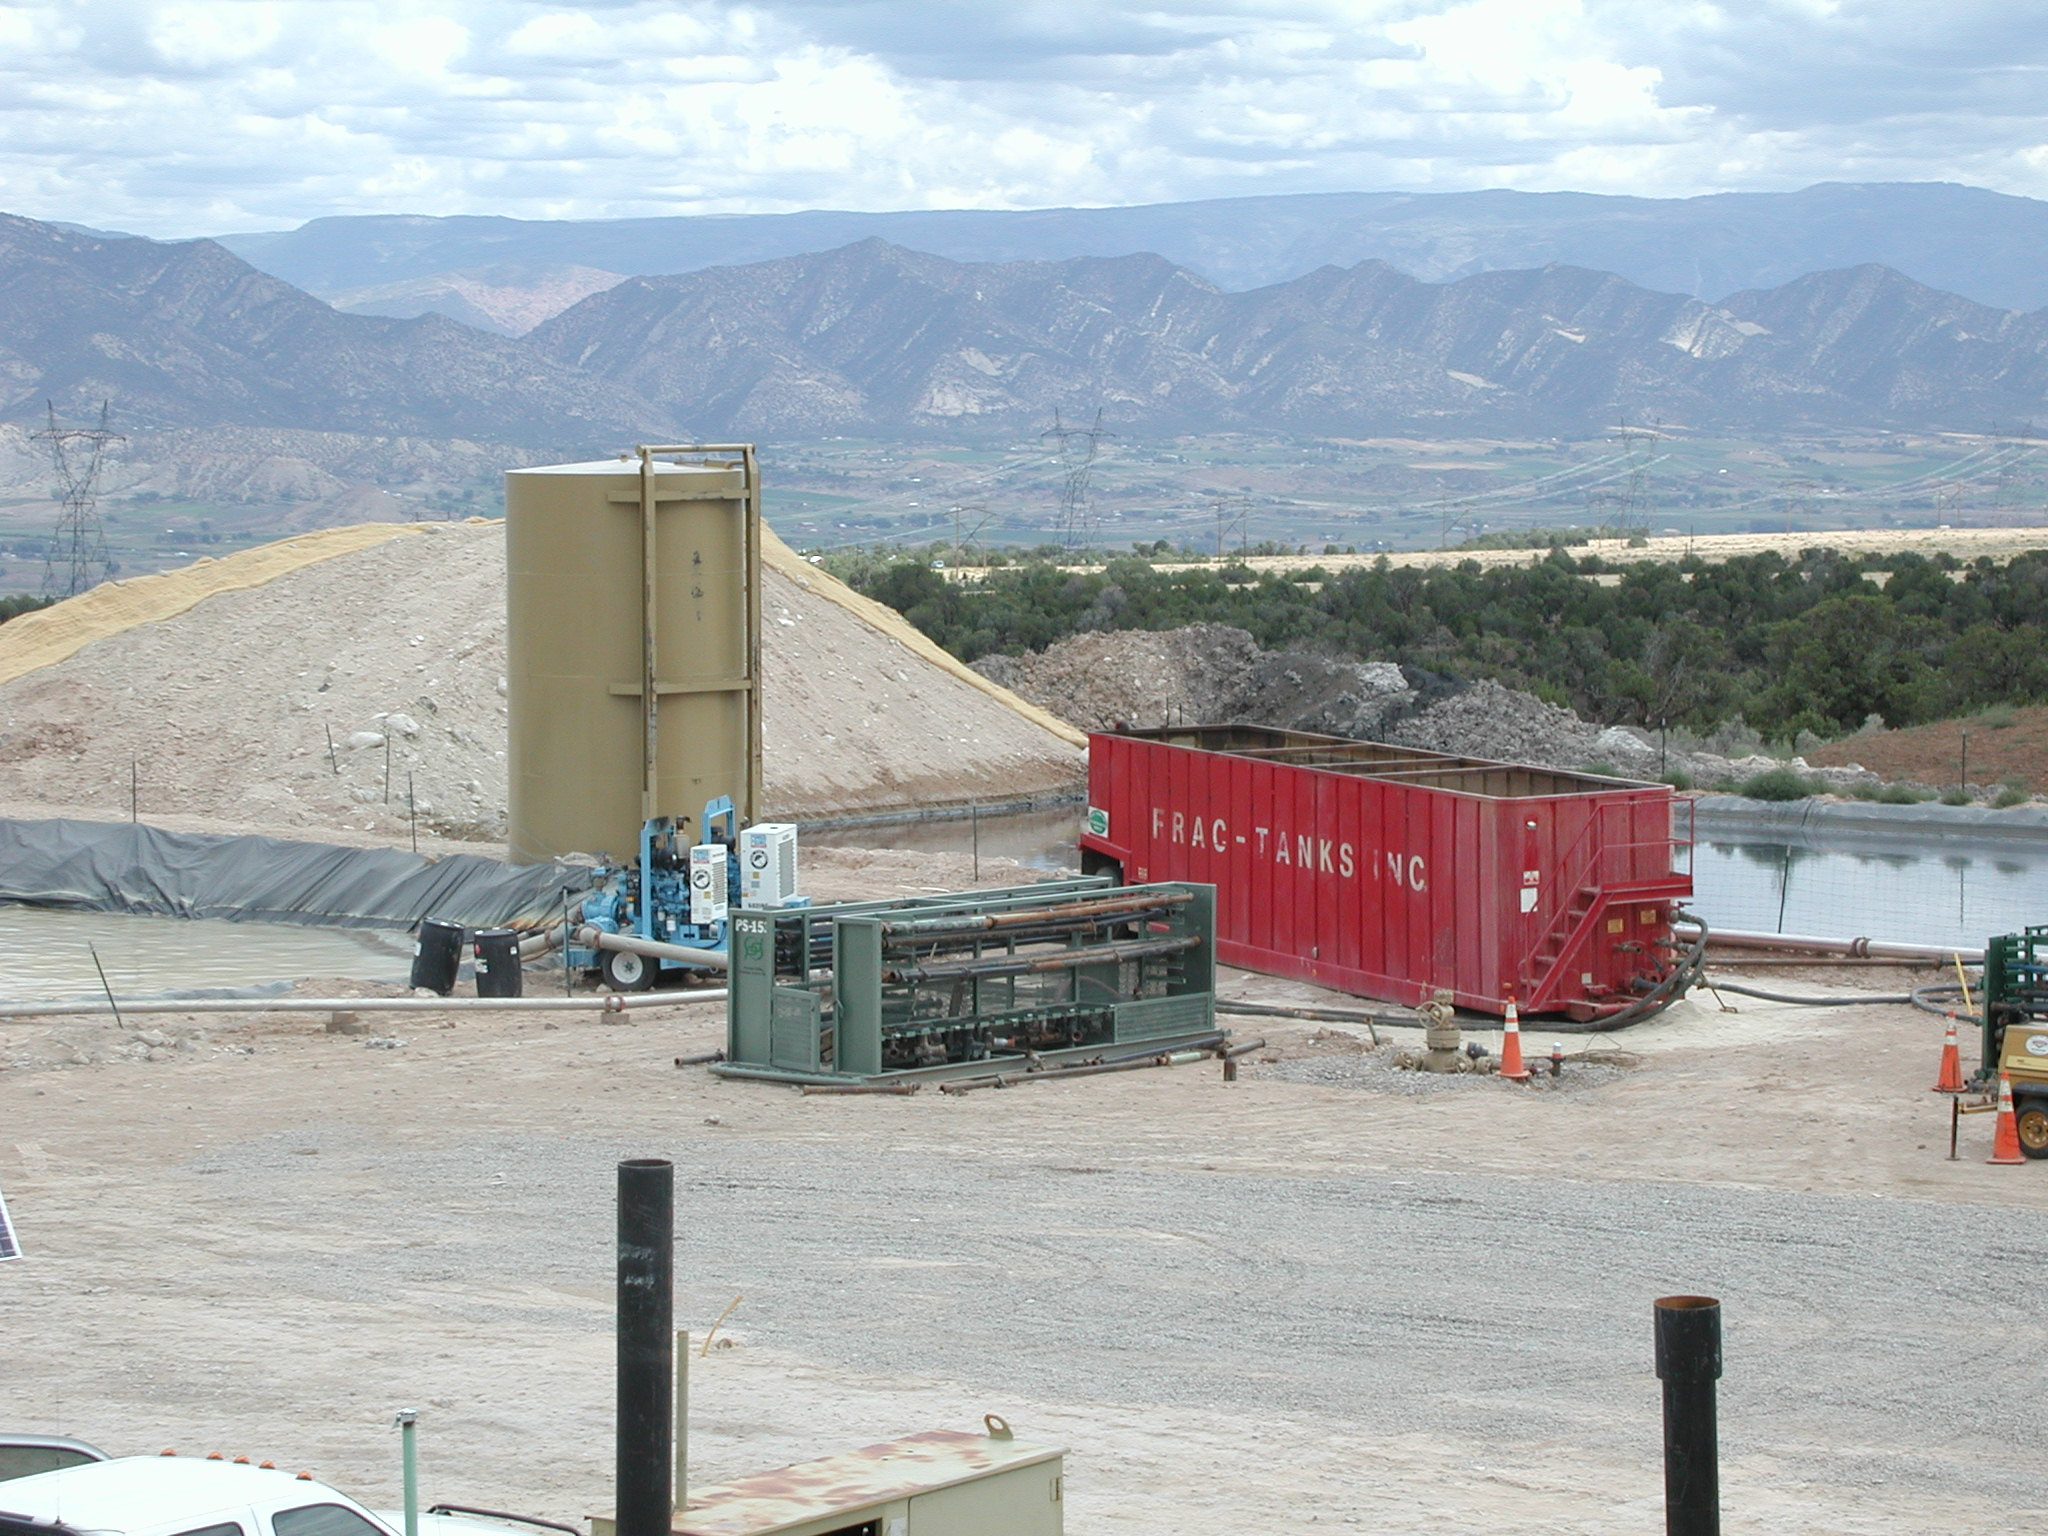 Fracking operation, Grass Mesa, Colorado. Photo Credit: Peggy Utesch.